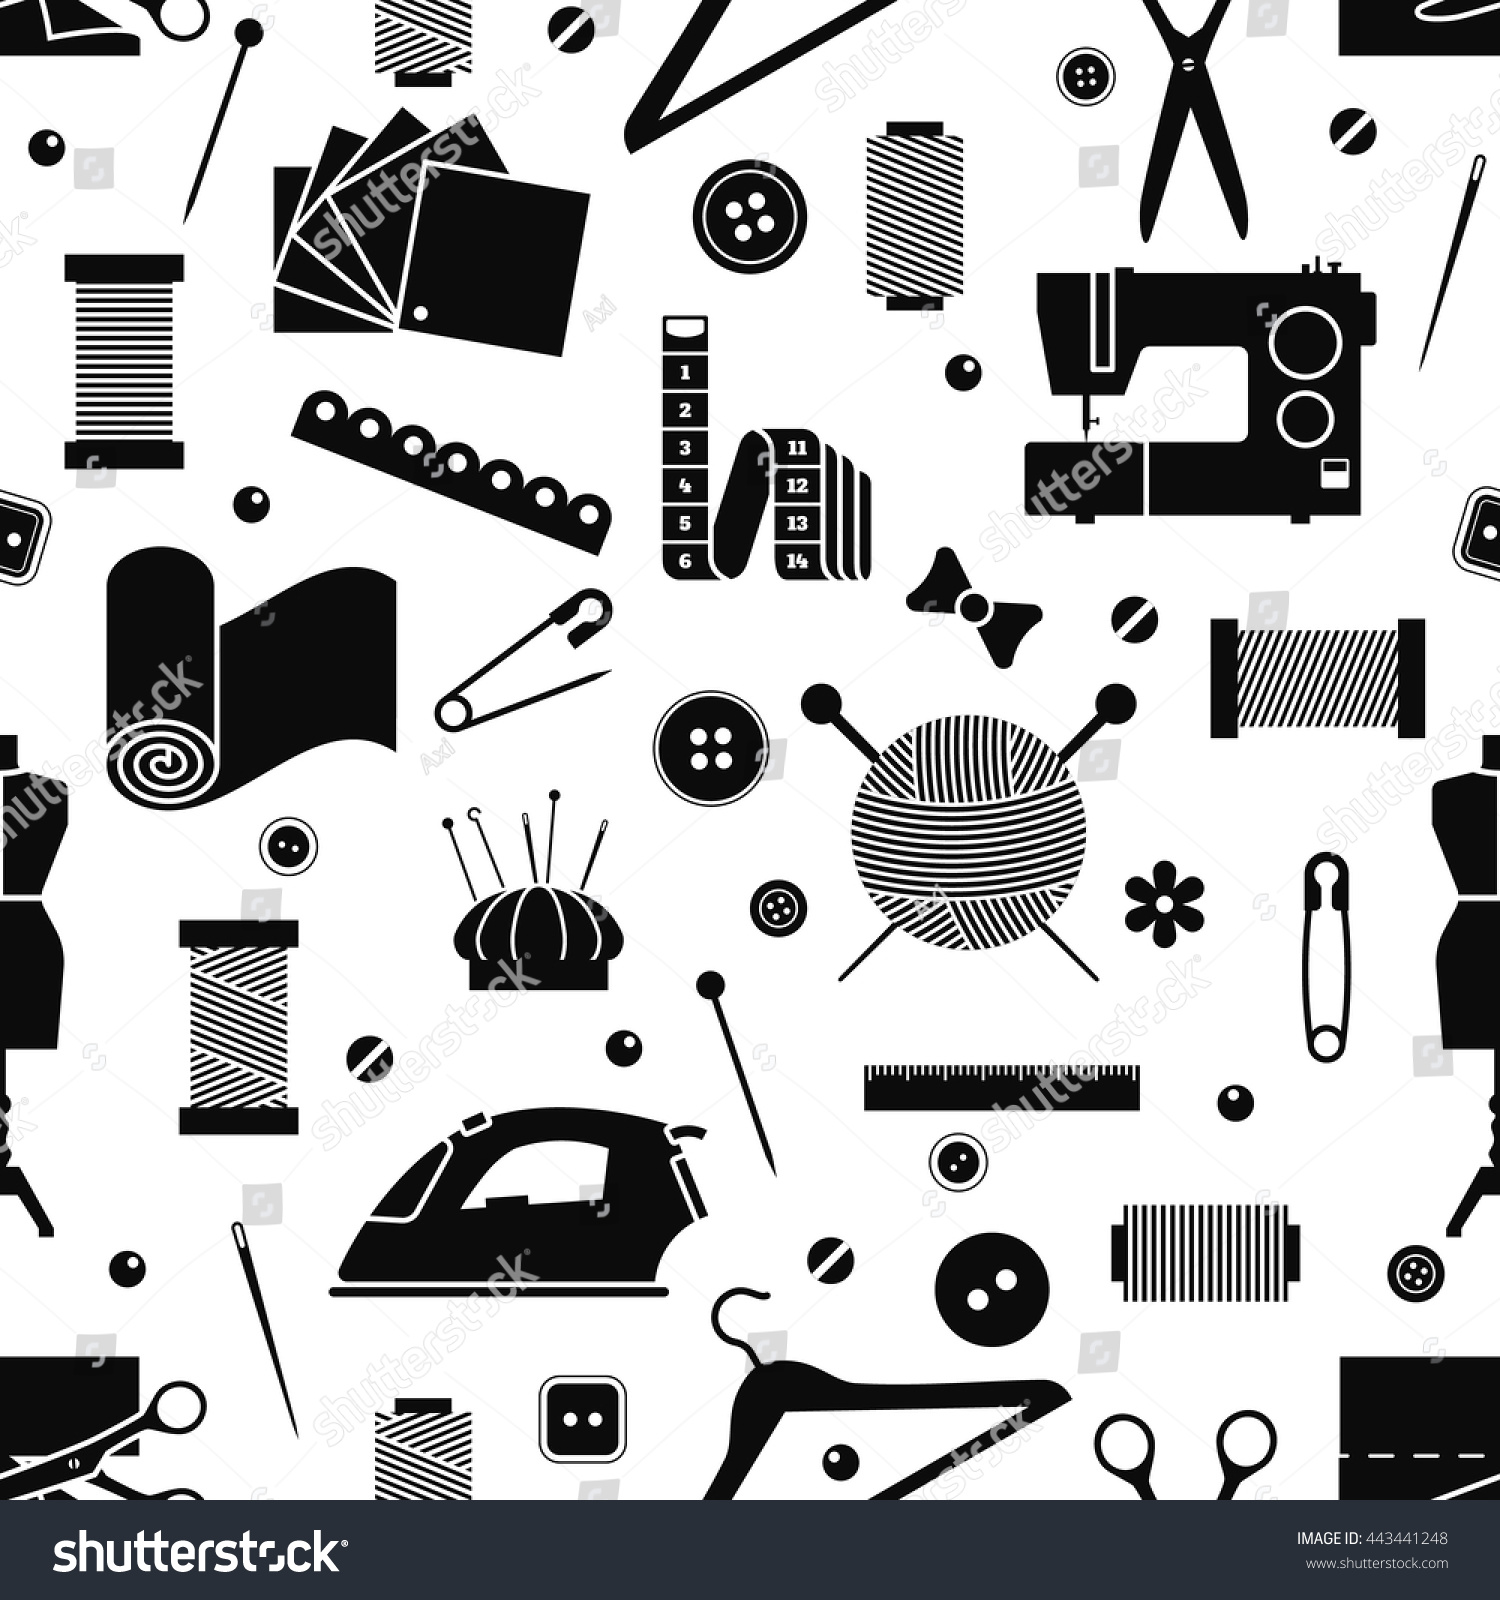 Vector Sewing Seamless Pattern Tailor Craft Stock Royalty Machine Diagram Car Interior Design Objects Isolated Atelier Equipment Illustration Seamstress